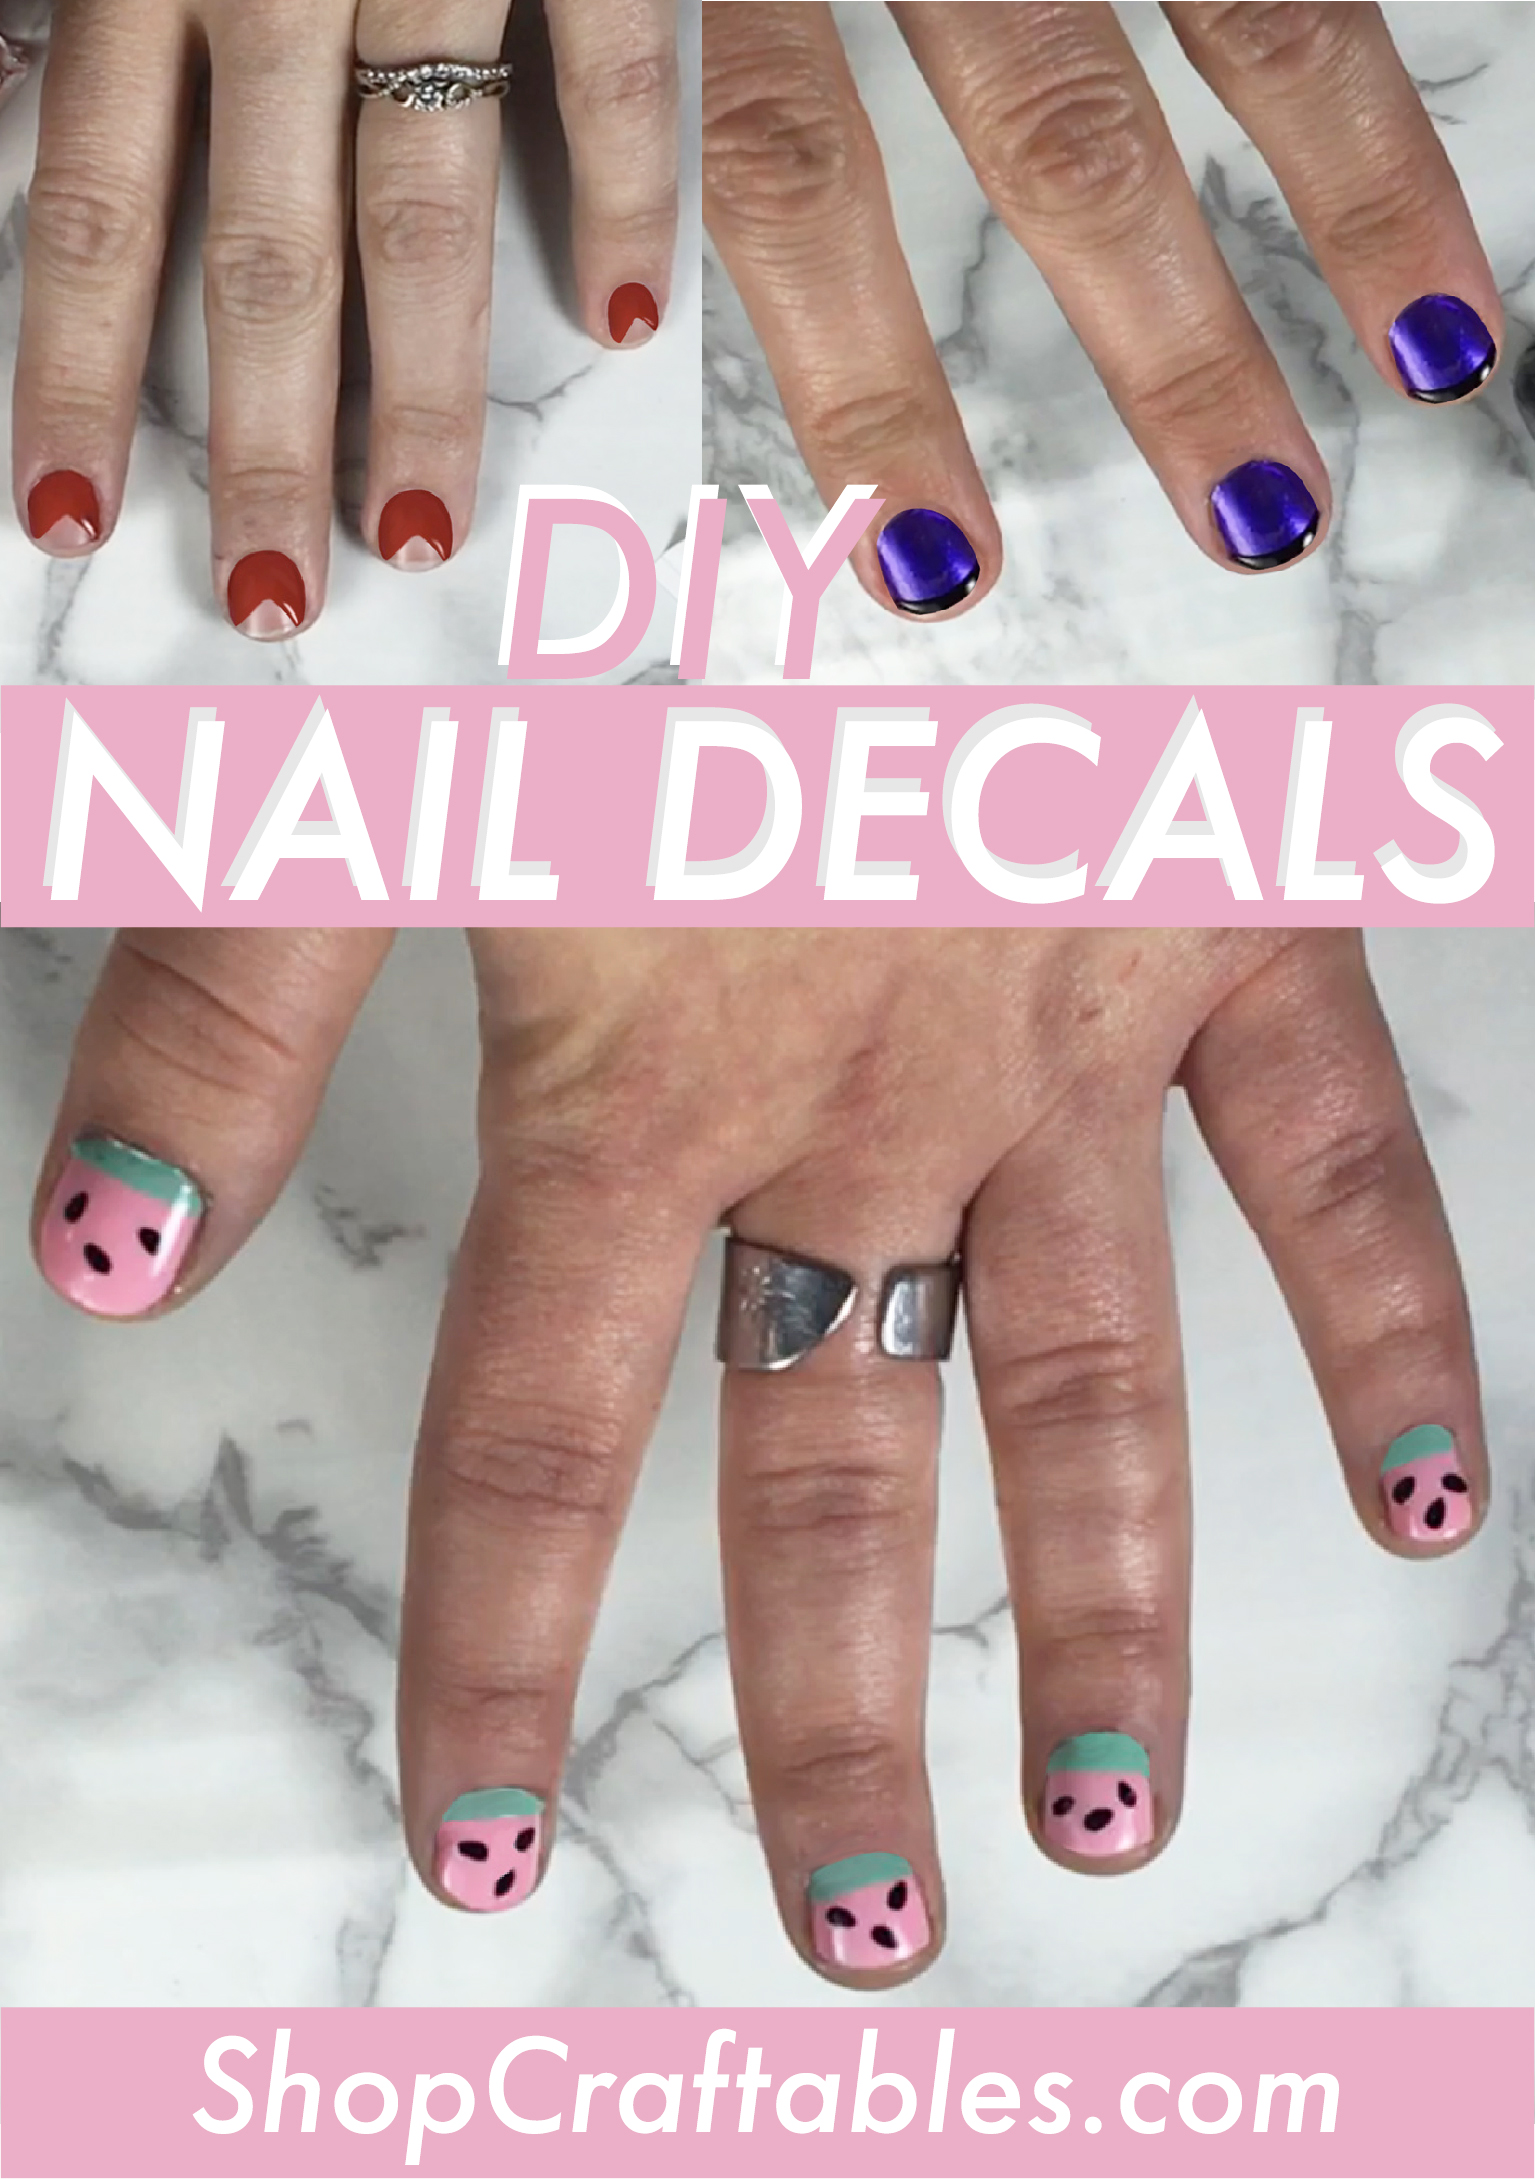 Make your own Nail Decals | Craftables Blog